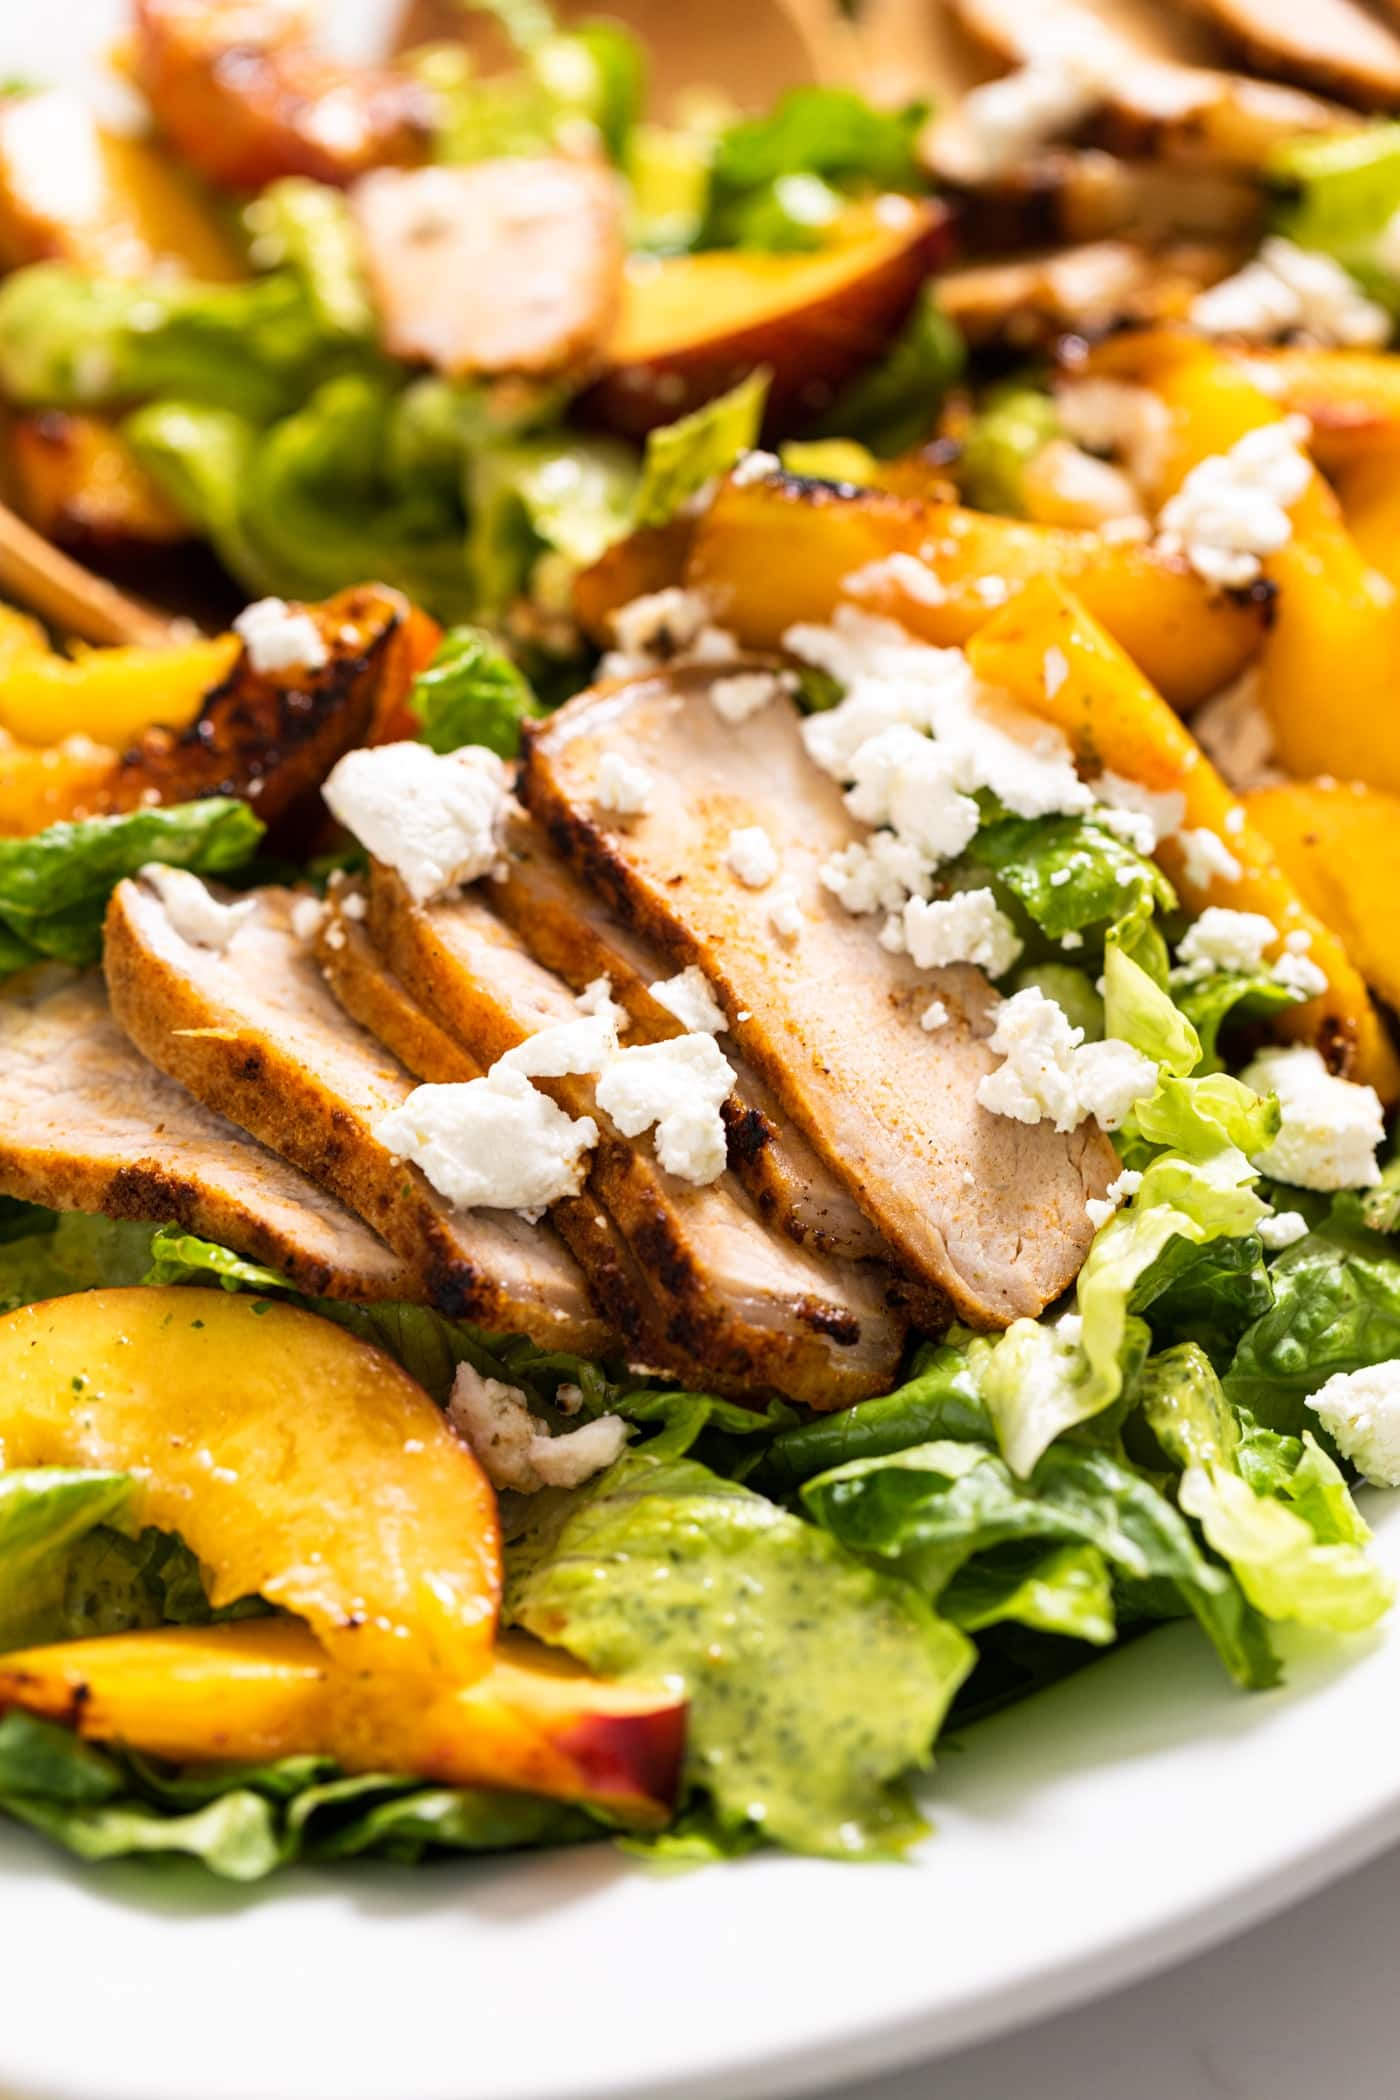 Close up view of white plate filled with lettuce topped with slices of pork and nectarines with goat cheese on top